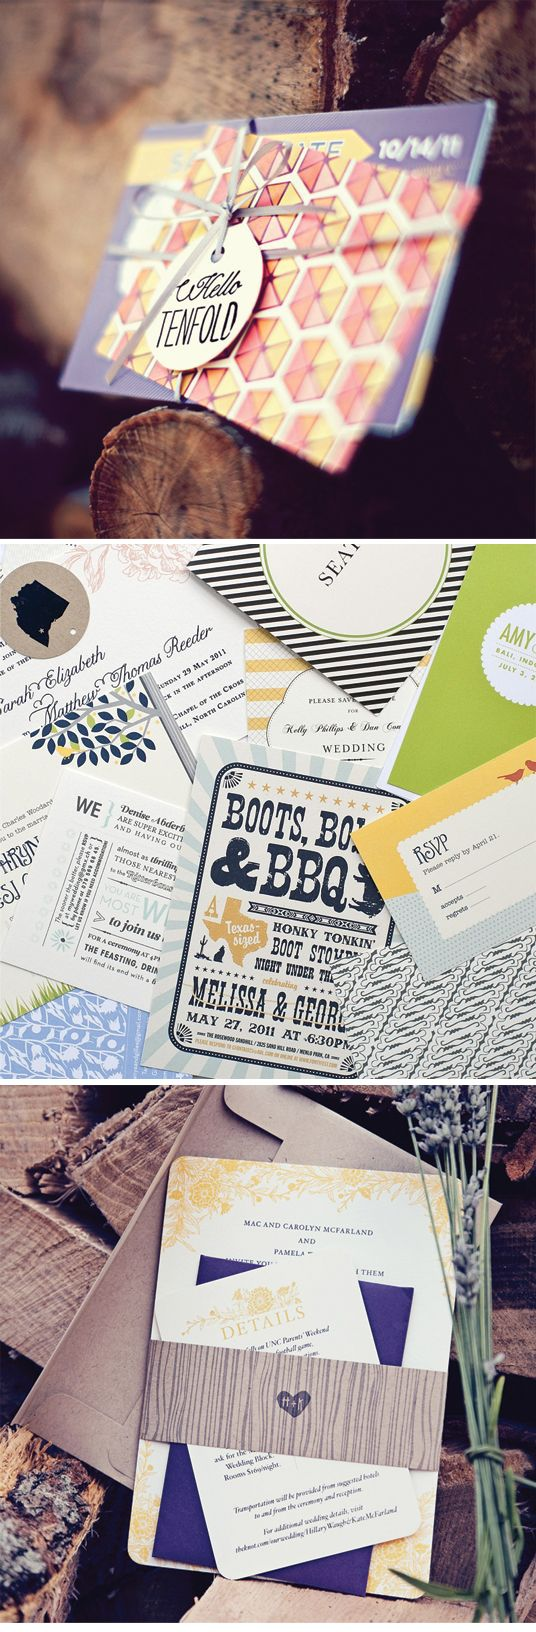 144 Best Rehearsal Dinner Bbq Decor Images On Pinterest Weddings